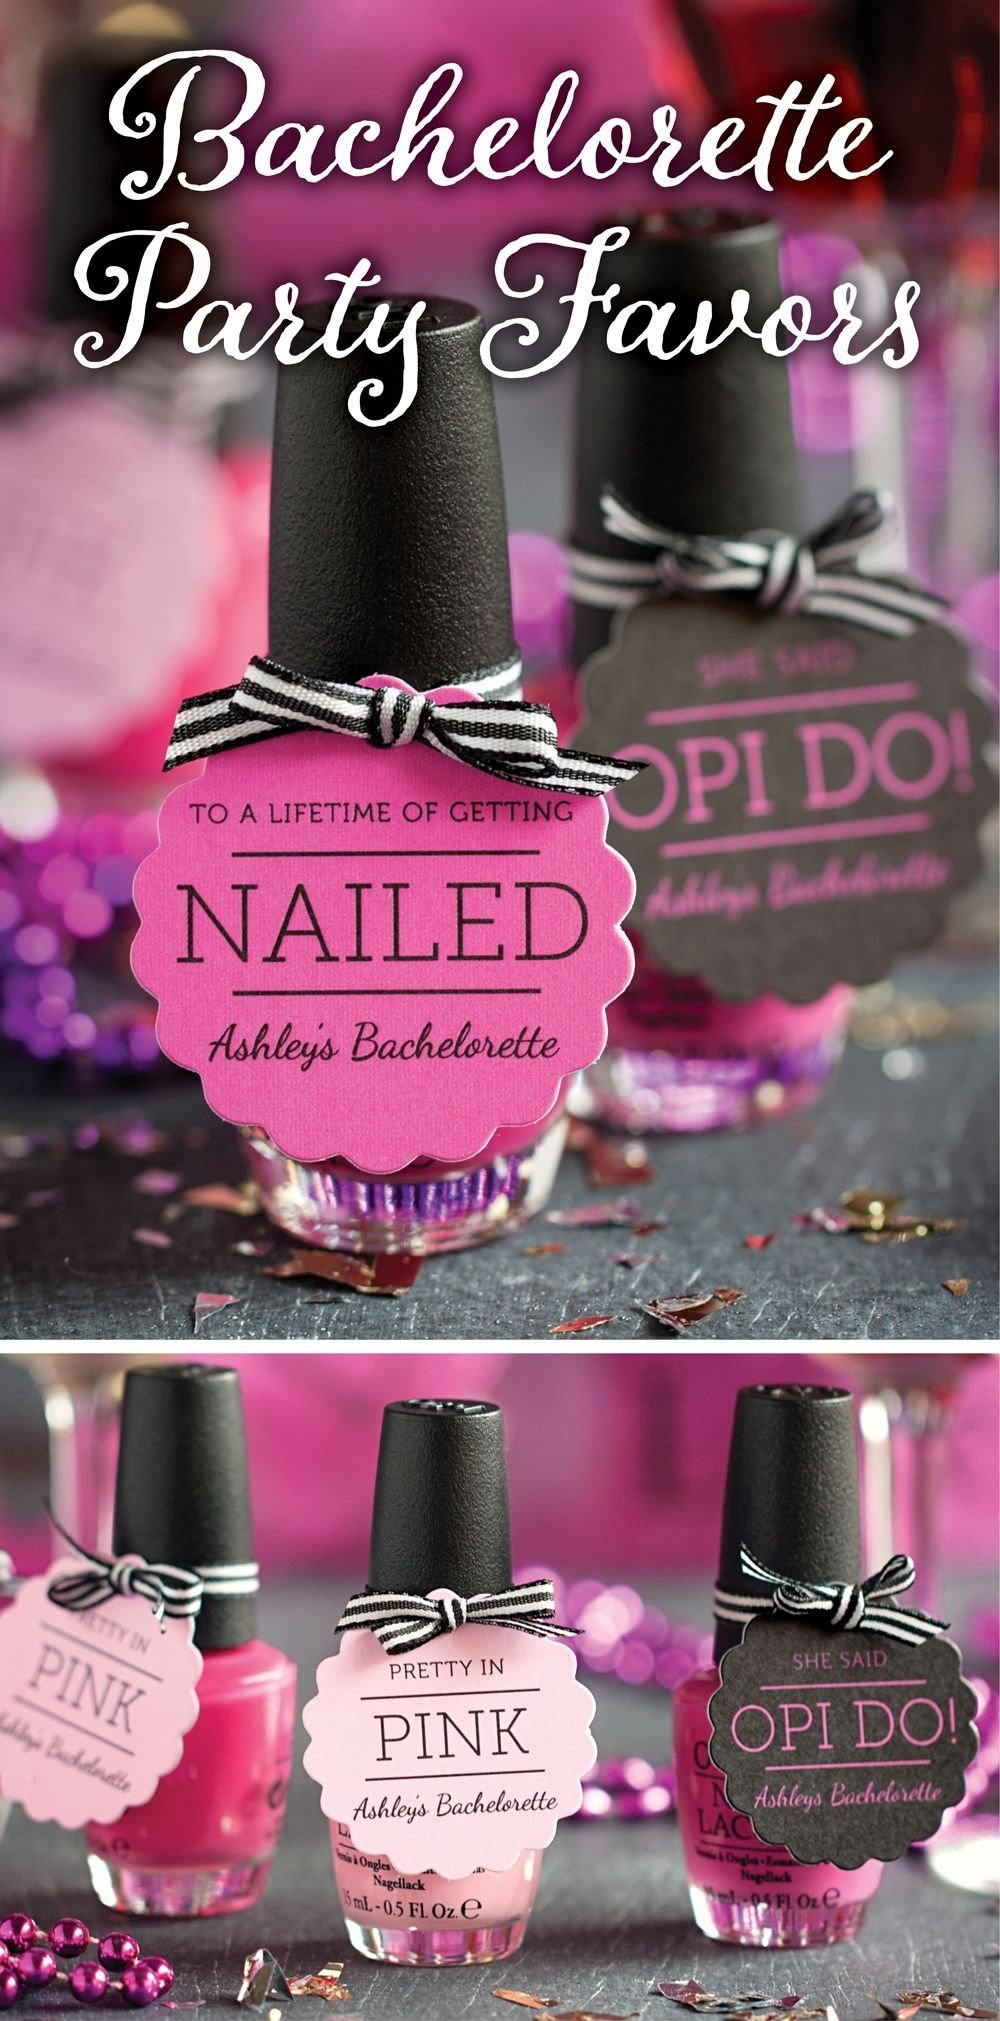 10 Fantastic Fun Ideas For Bachelorette Party bachelorette party favor ideas opi nails bachelorette parties and opi 1